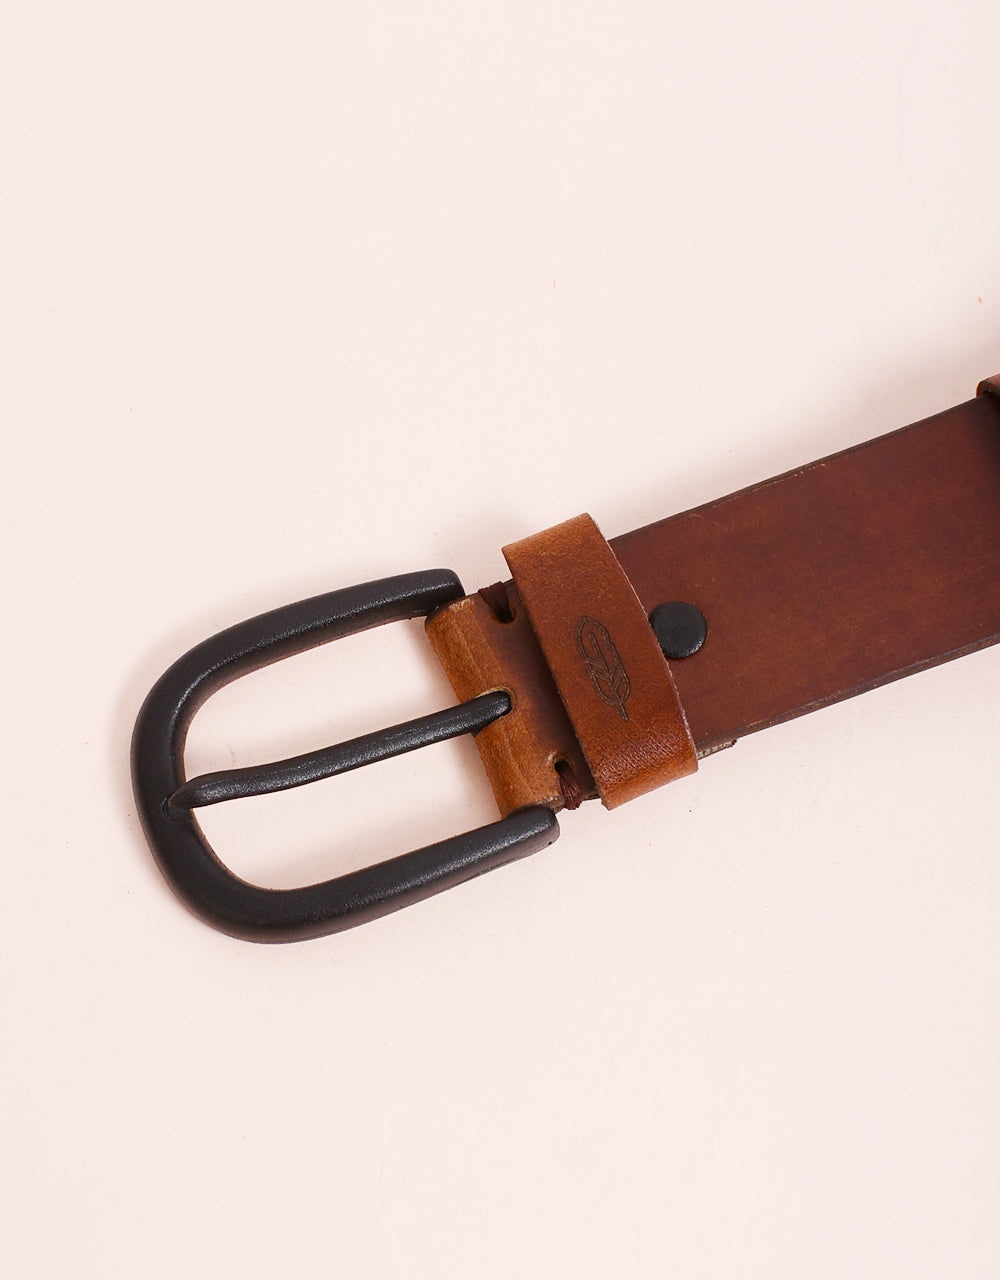 Rationale 2 Leather Belt